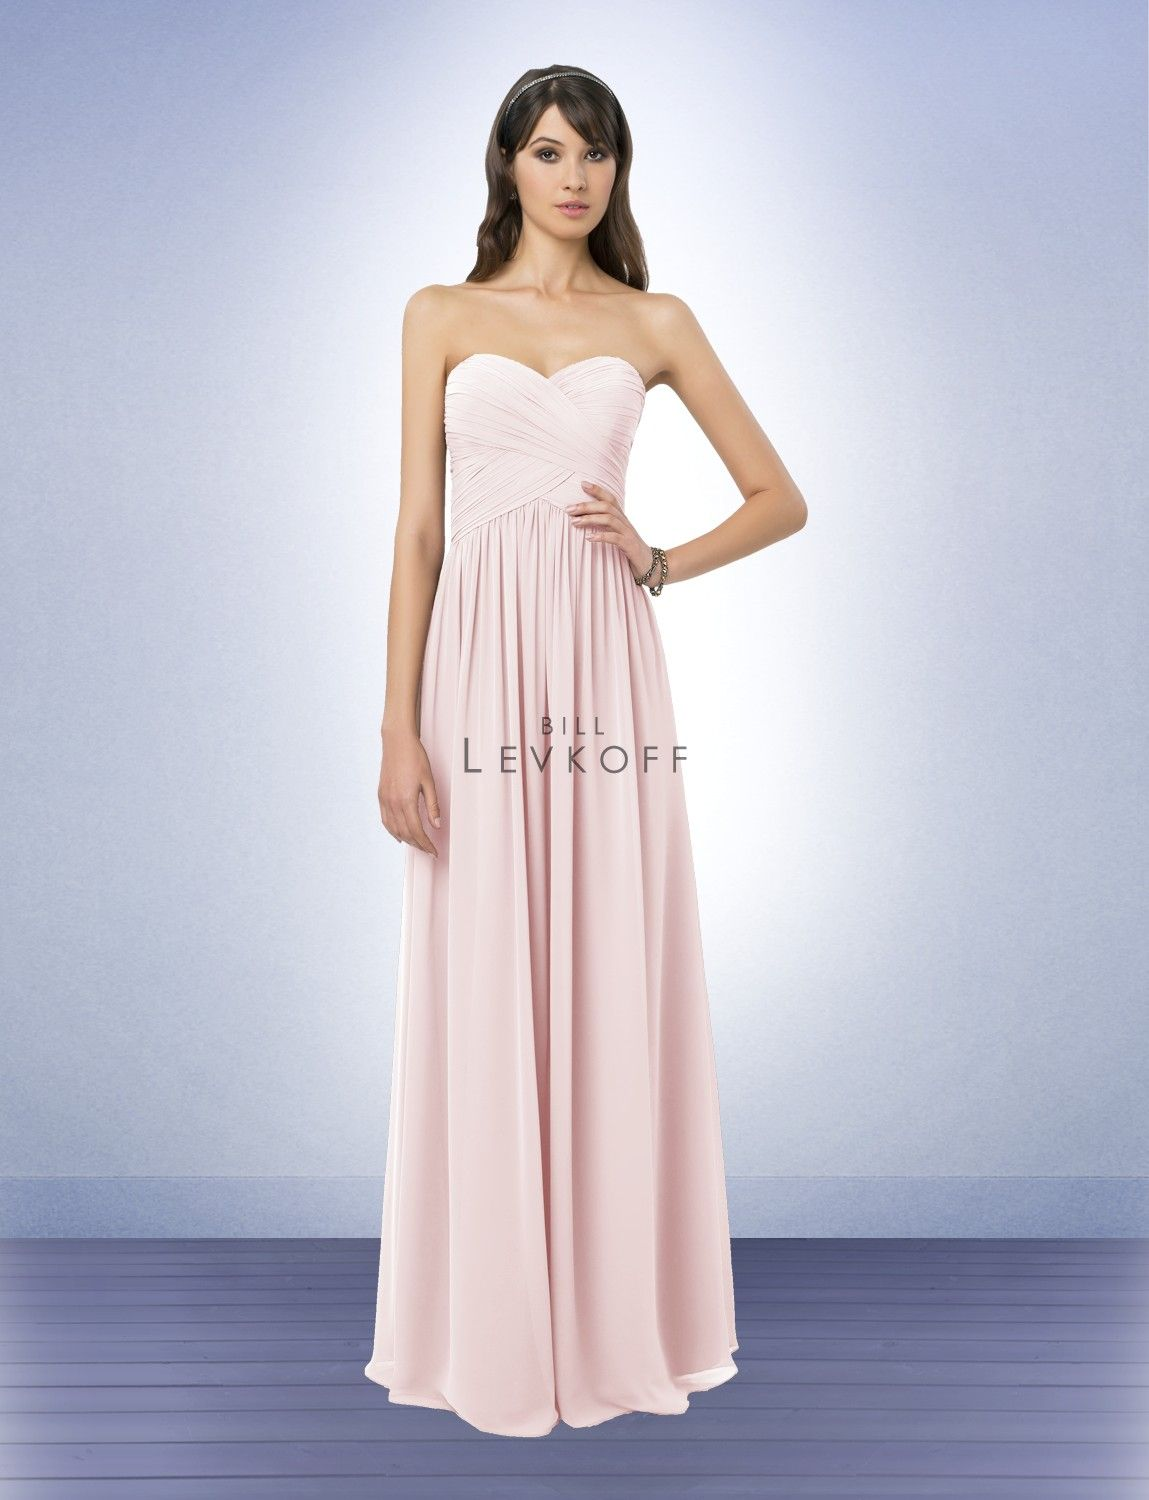 Bill levkoff bridesmaid dress style 778 petal pink just to bill levkoff bridesmaid dress style 778 petal pink just to link us to ombrellifo Image collections